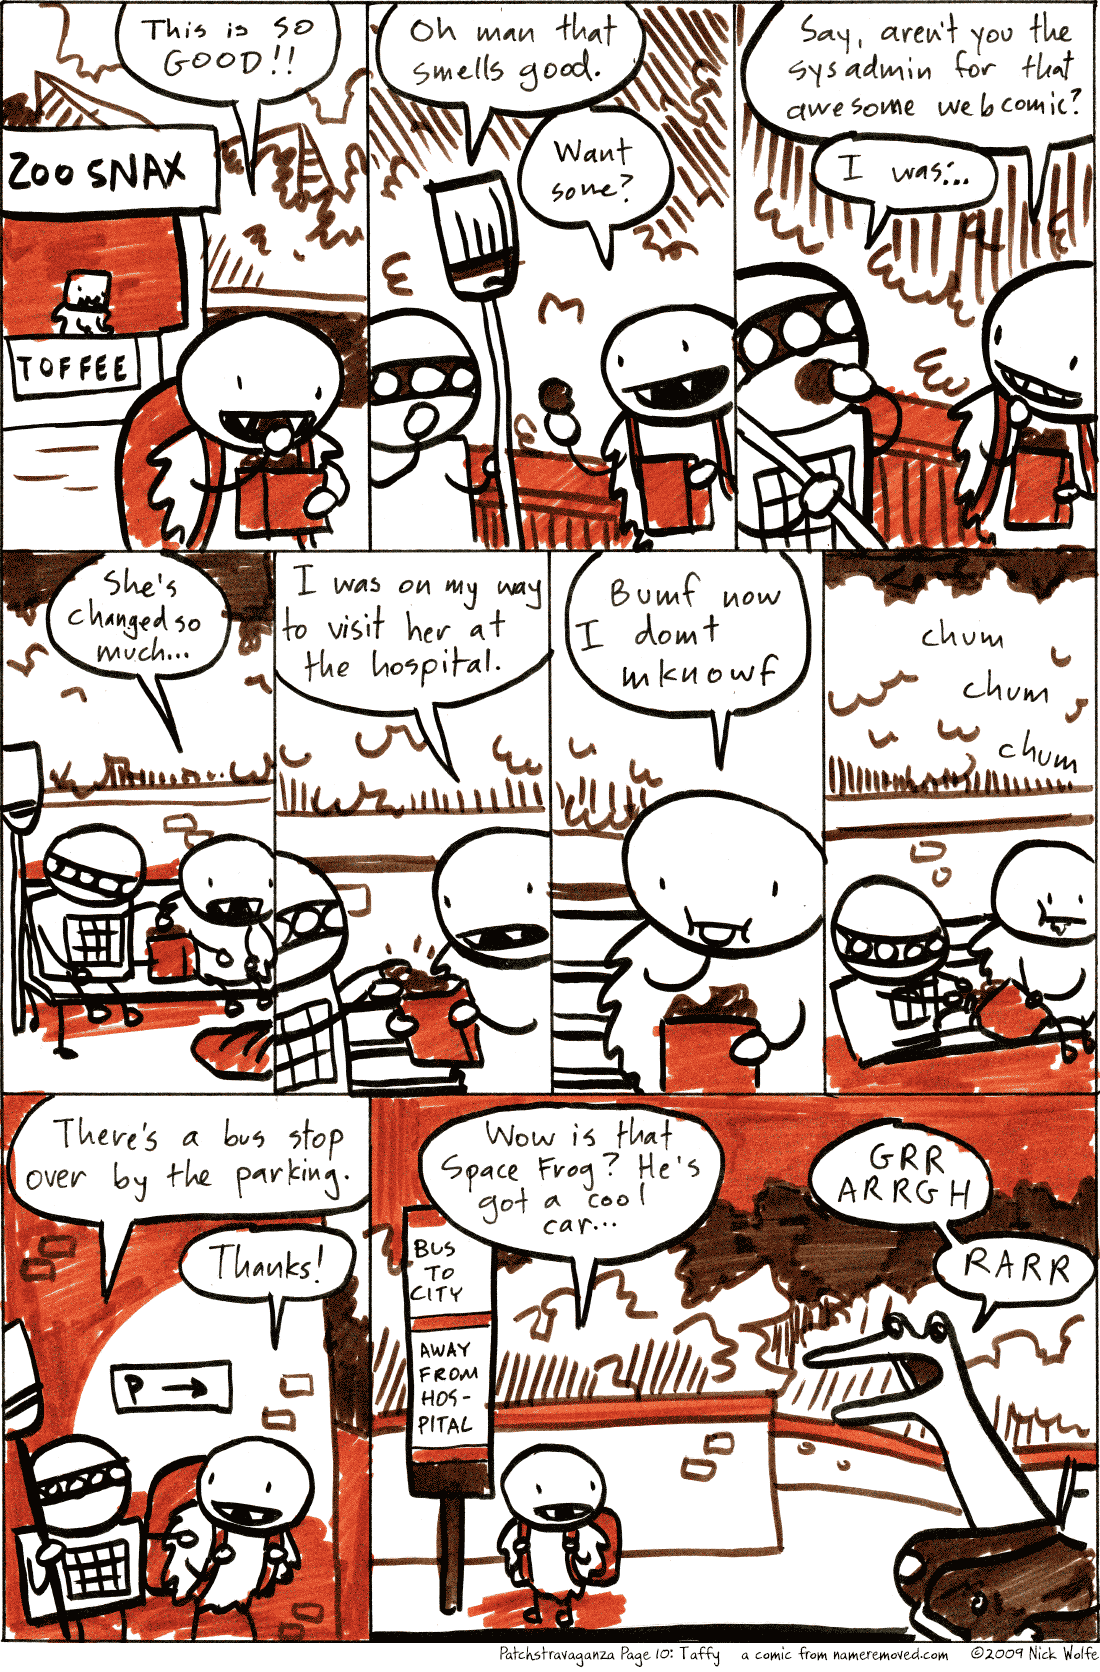 Patchstravaganza Page 10: Taffy